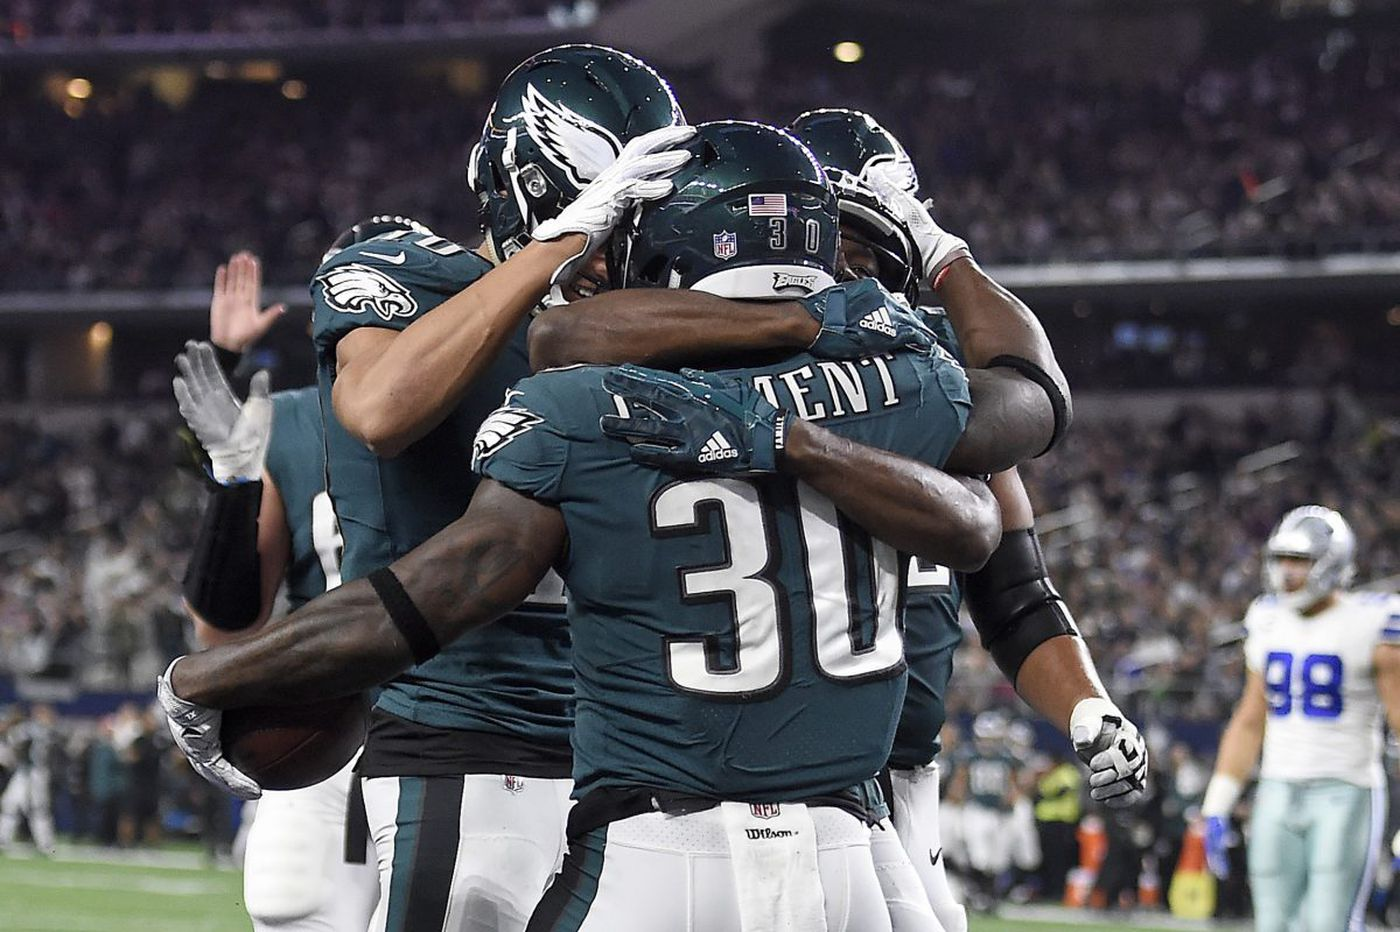 What happened at halftime for the Eagles? | Early Birds